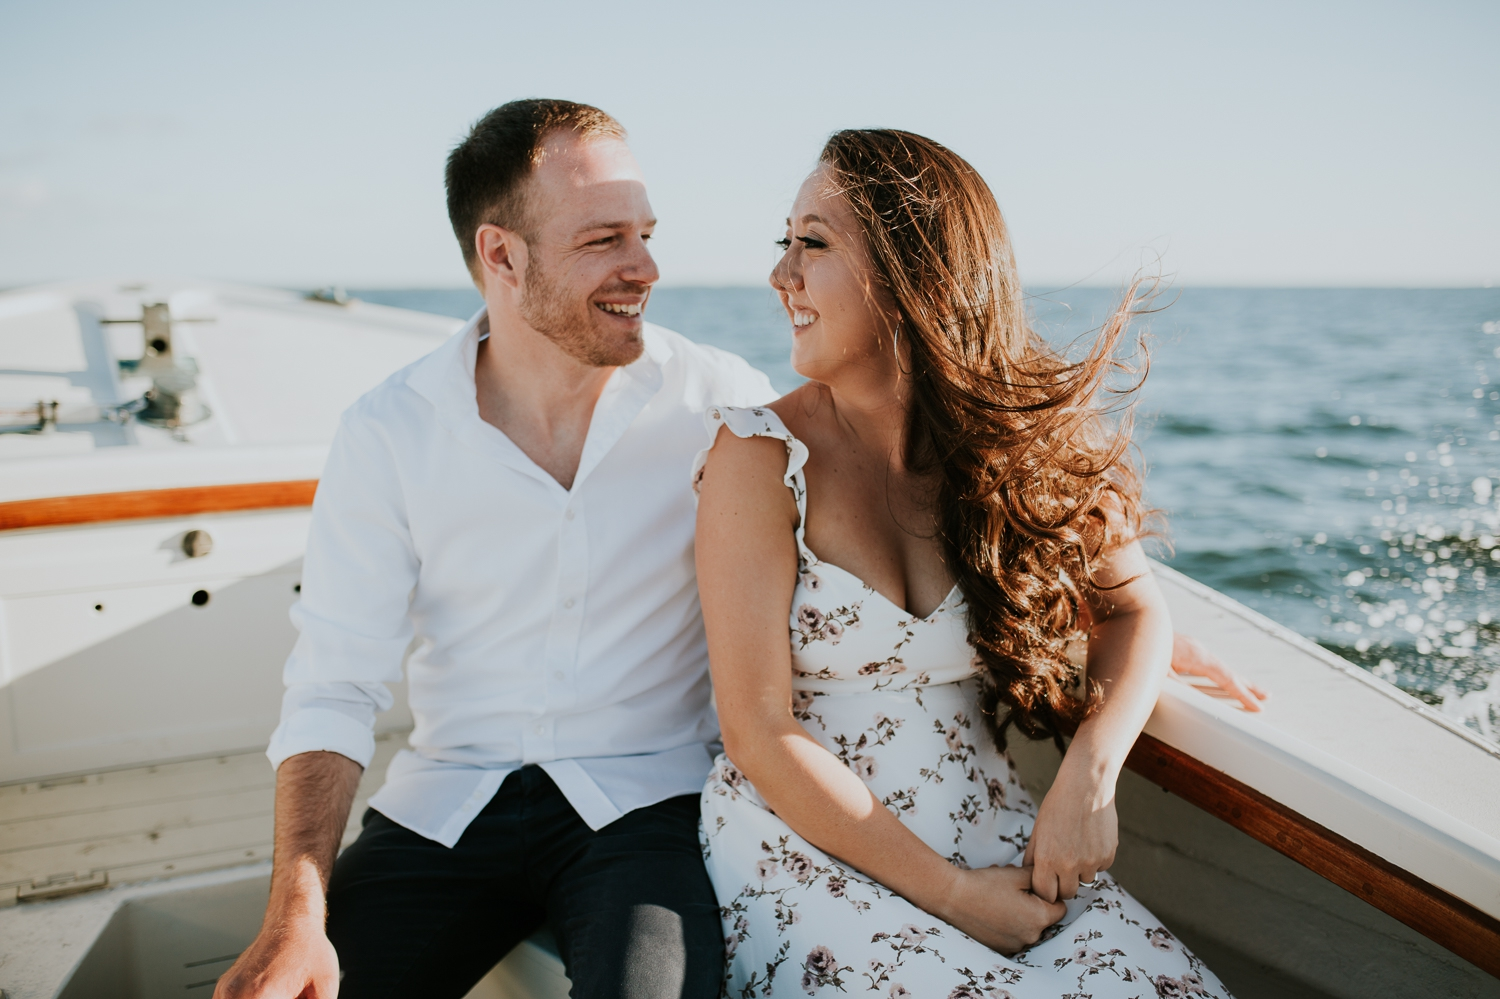 ho-hum-beach-boat-ride-engagement-photography-bellport-new-york 2.jpg